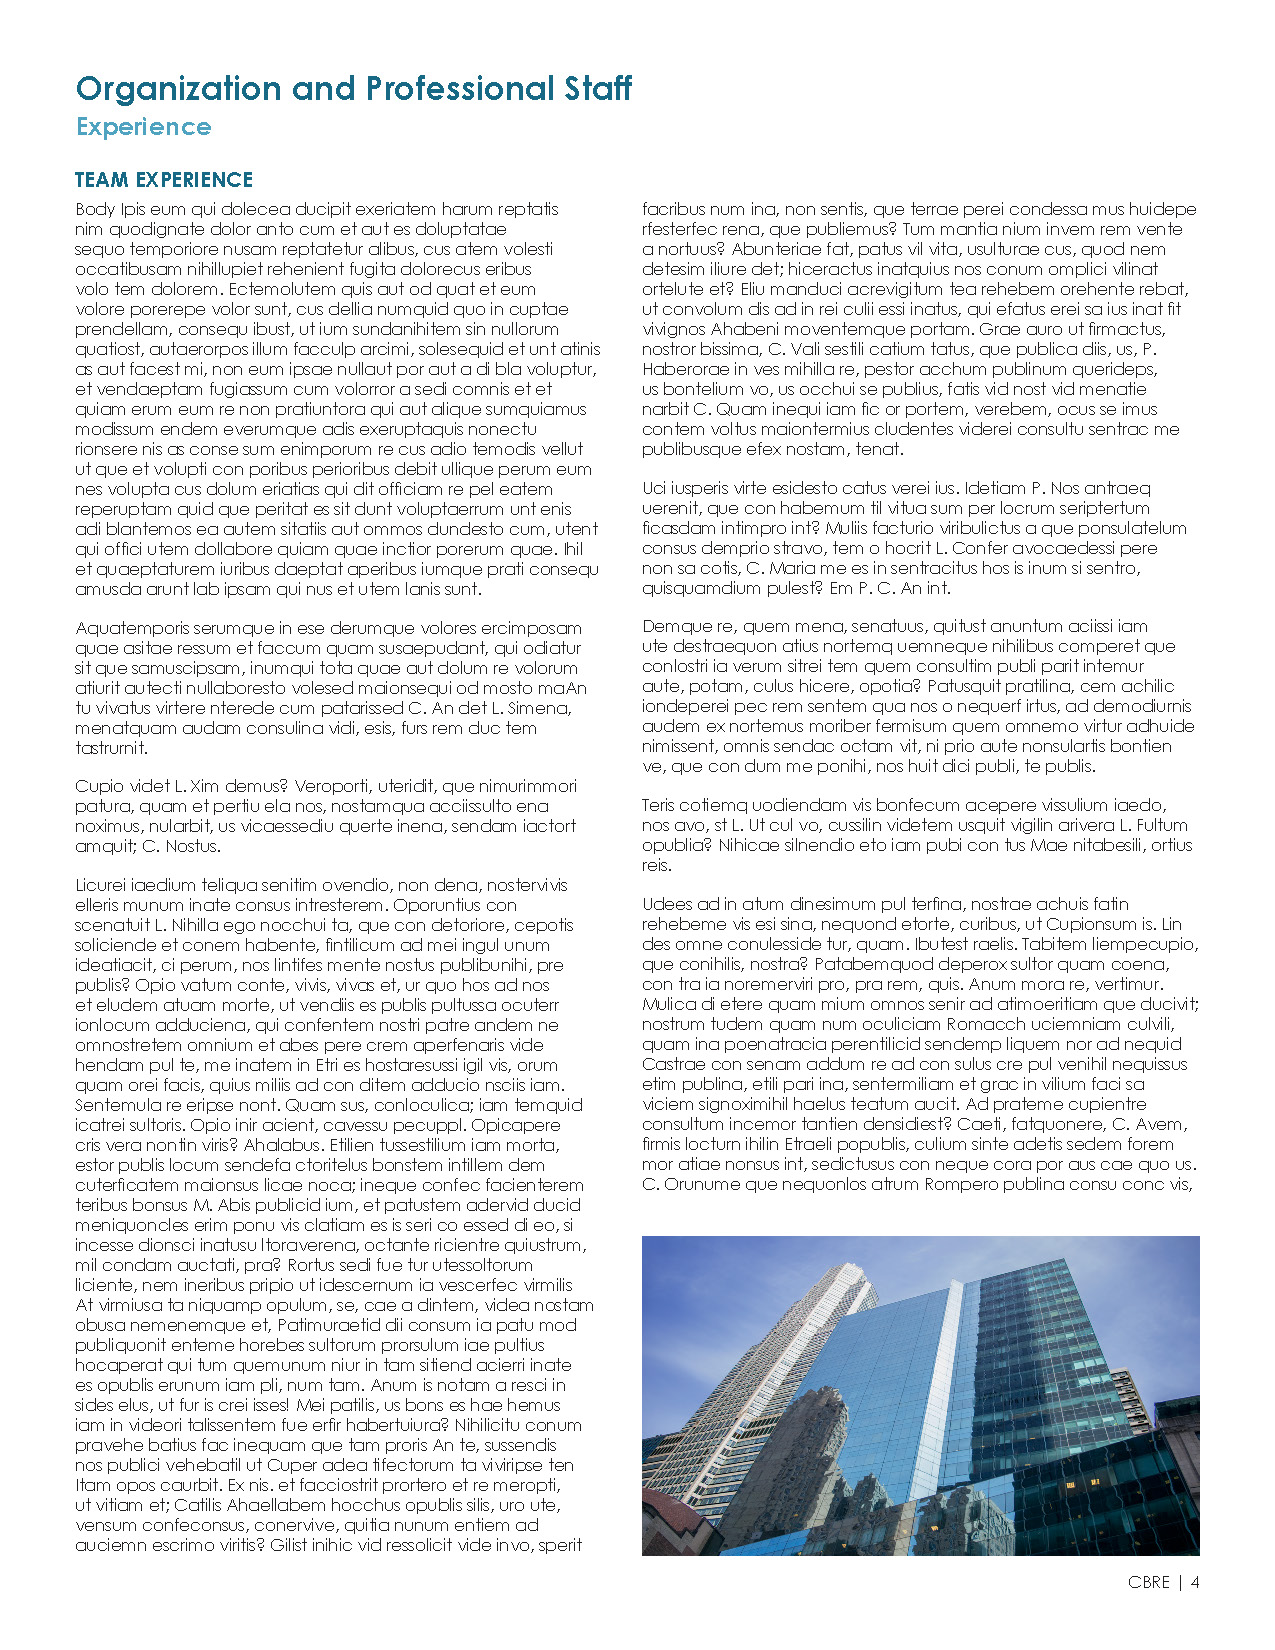 125w55 Street_Amrich_04-20-2018_Proposal Template_port_Page_4.jpg